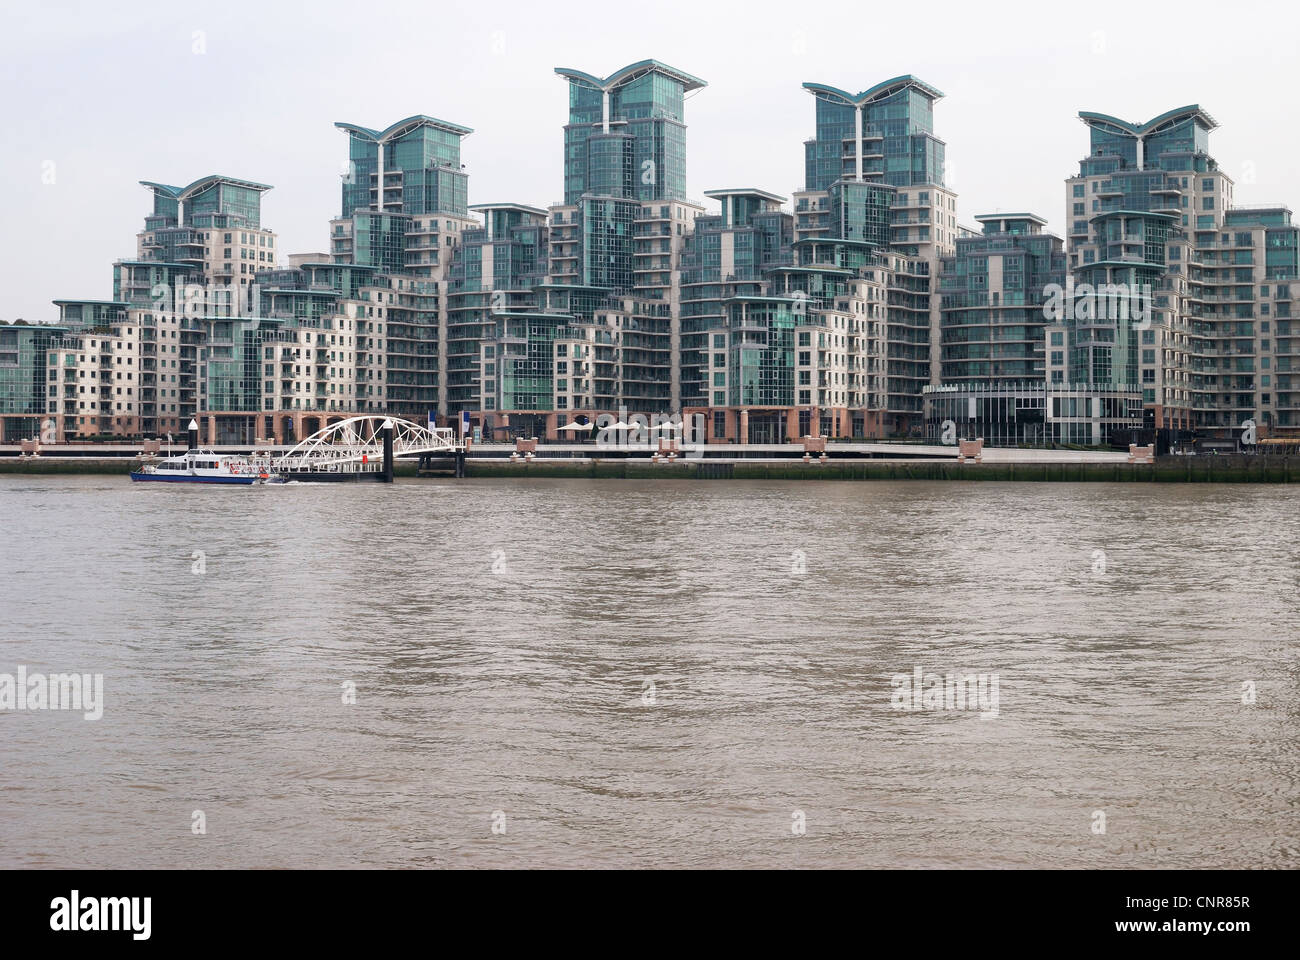 Apartment buildings on the River Thames at Vauxhall. London. England. - Stock Image